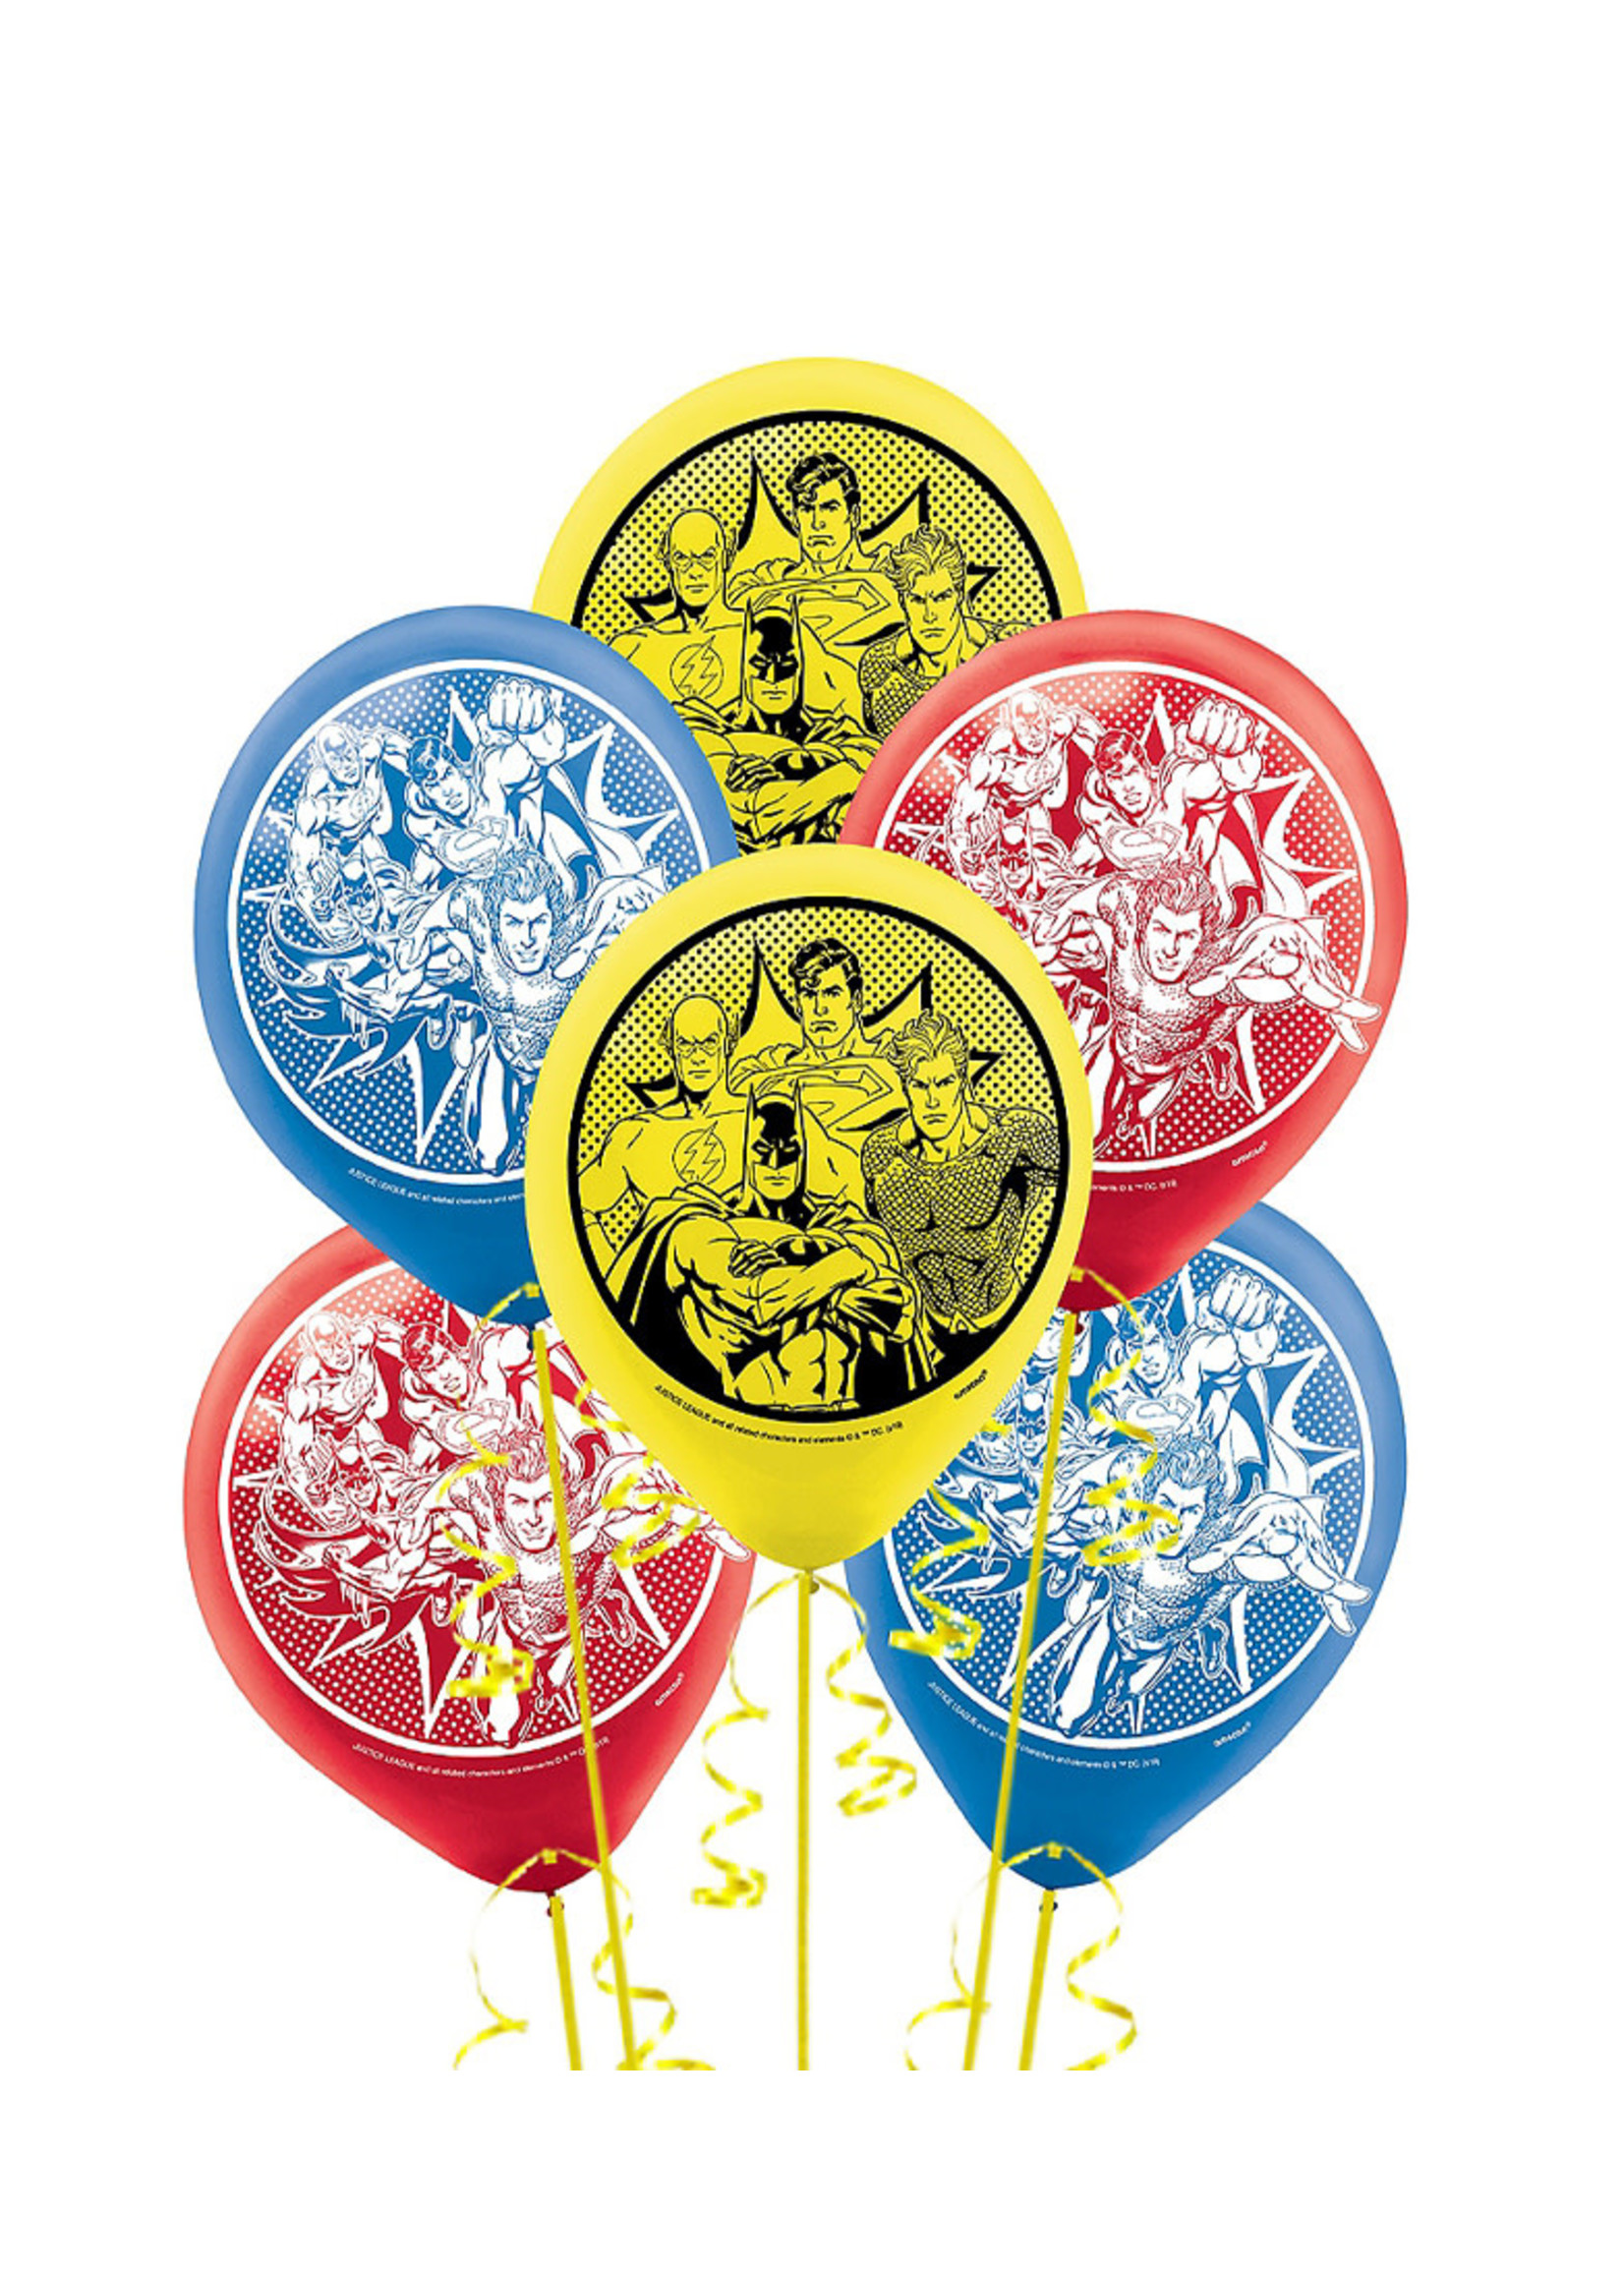 Justice League Heroes Unite Balloons - 6ct